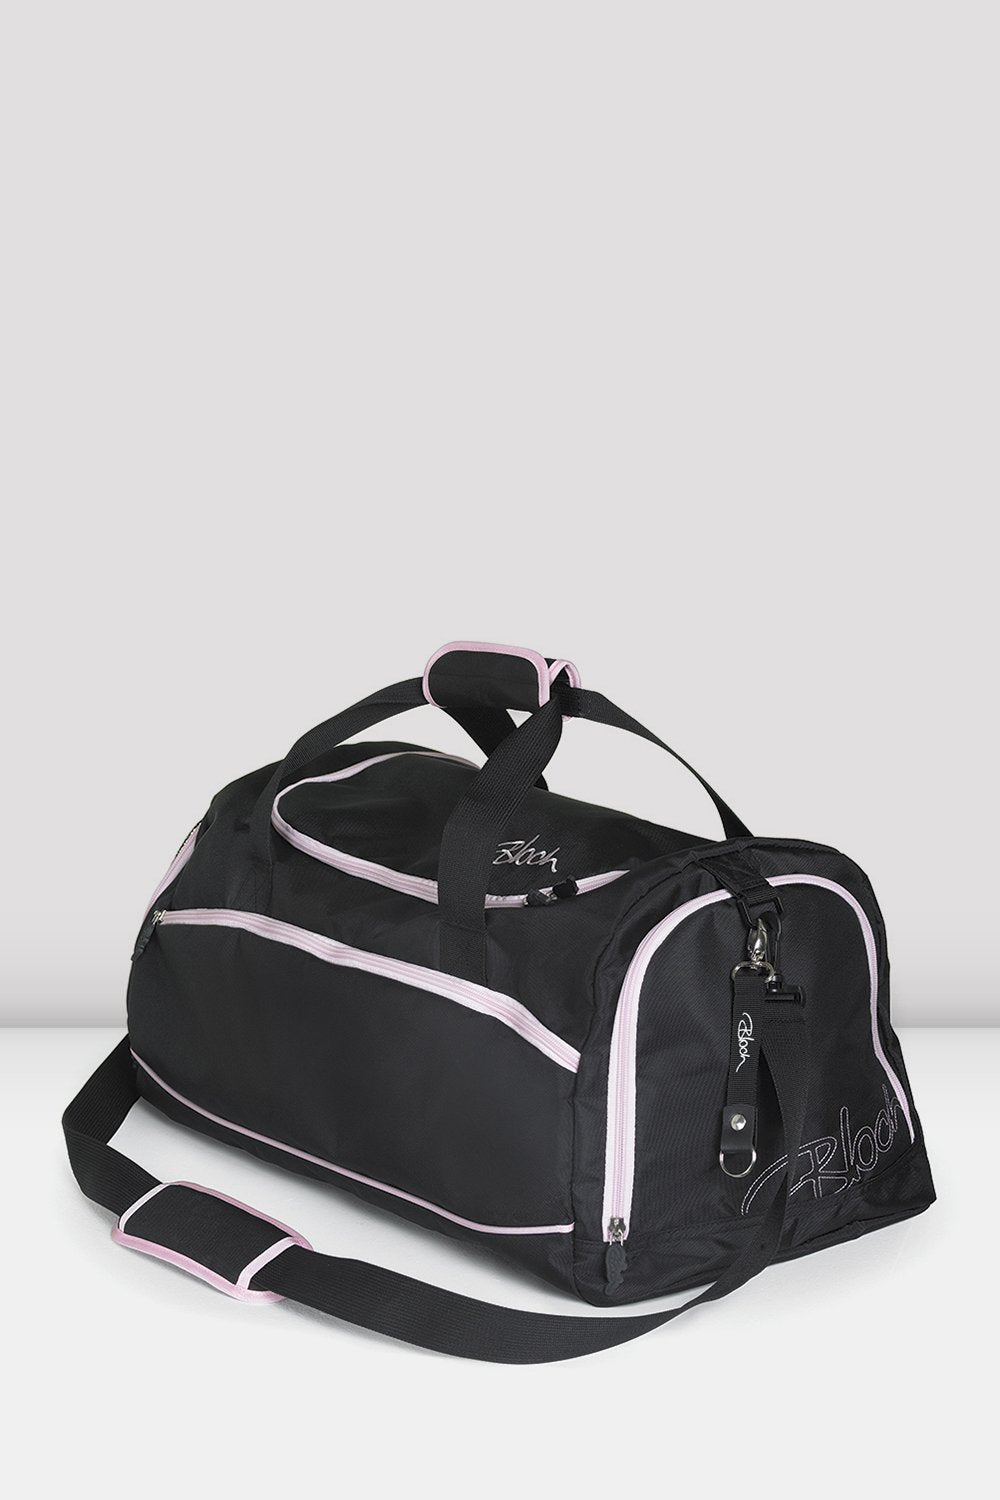 Black pink nylon Bloch Ballet Duffel Bag with multiple zipped compartments and adjustable straps